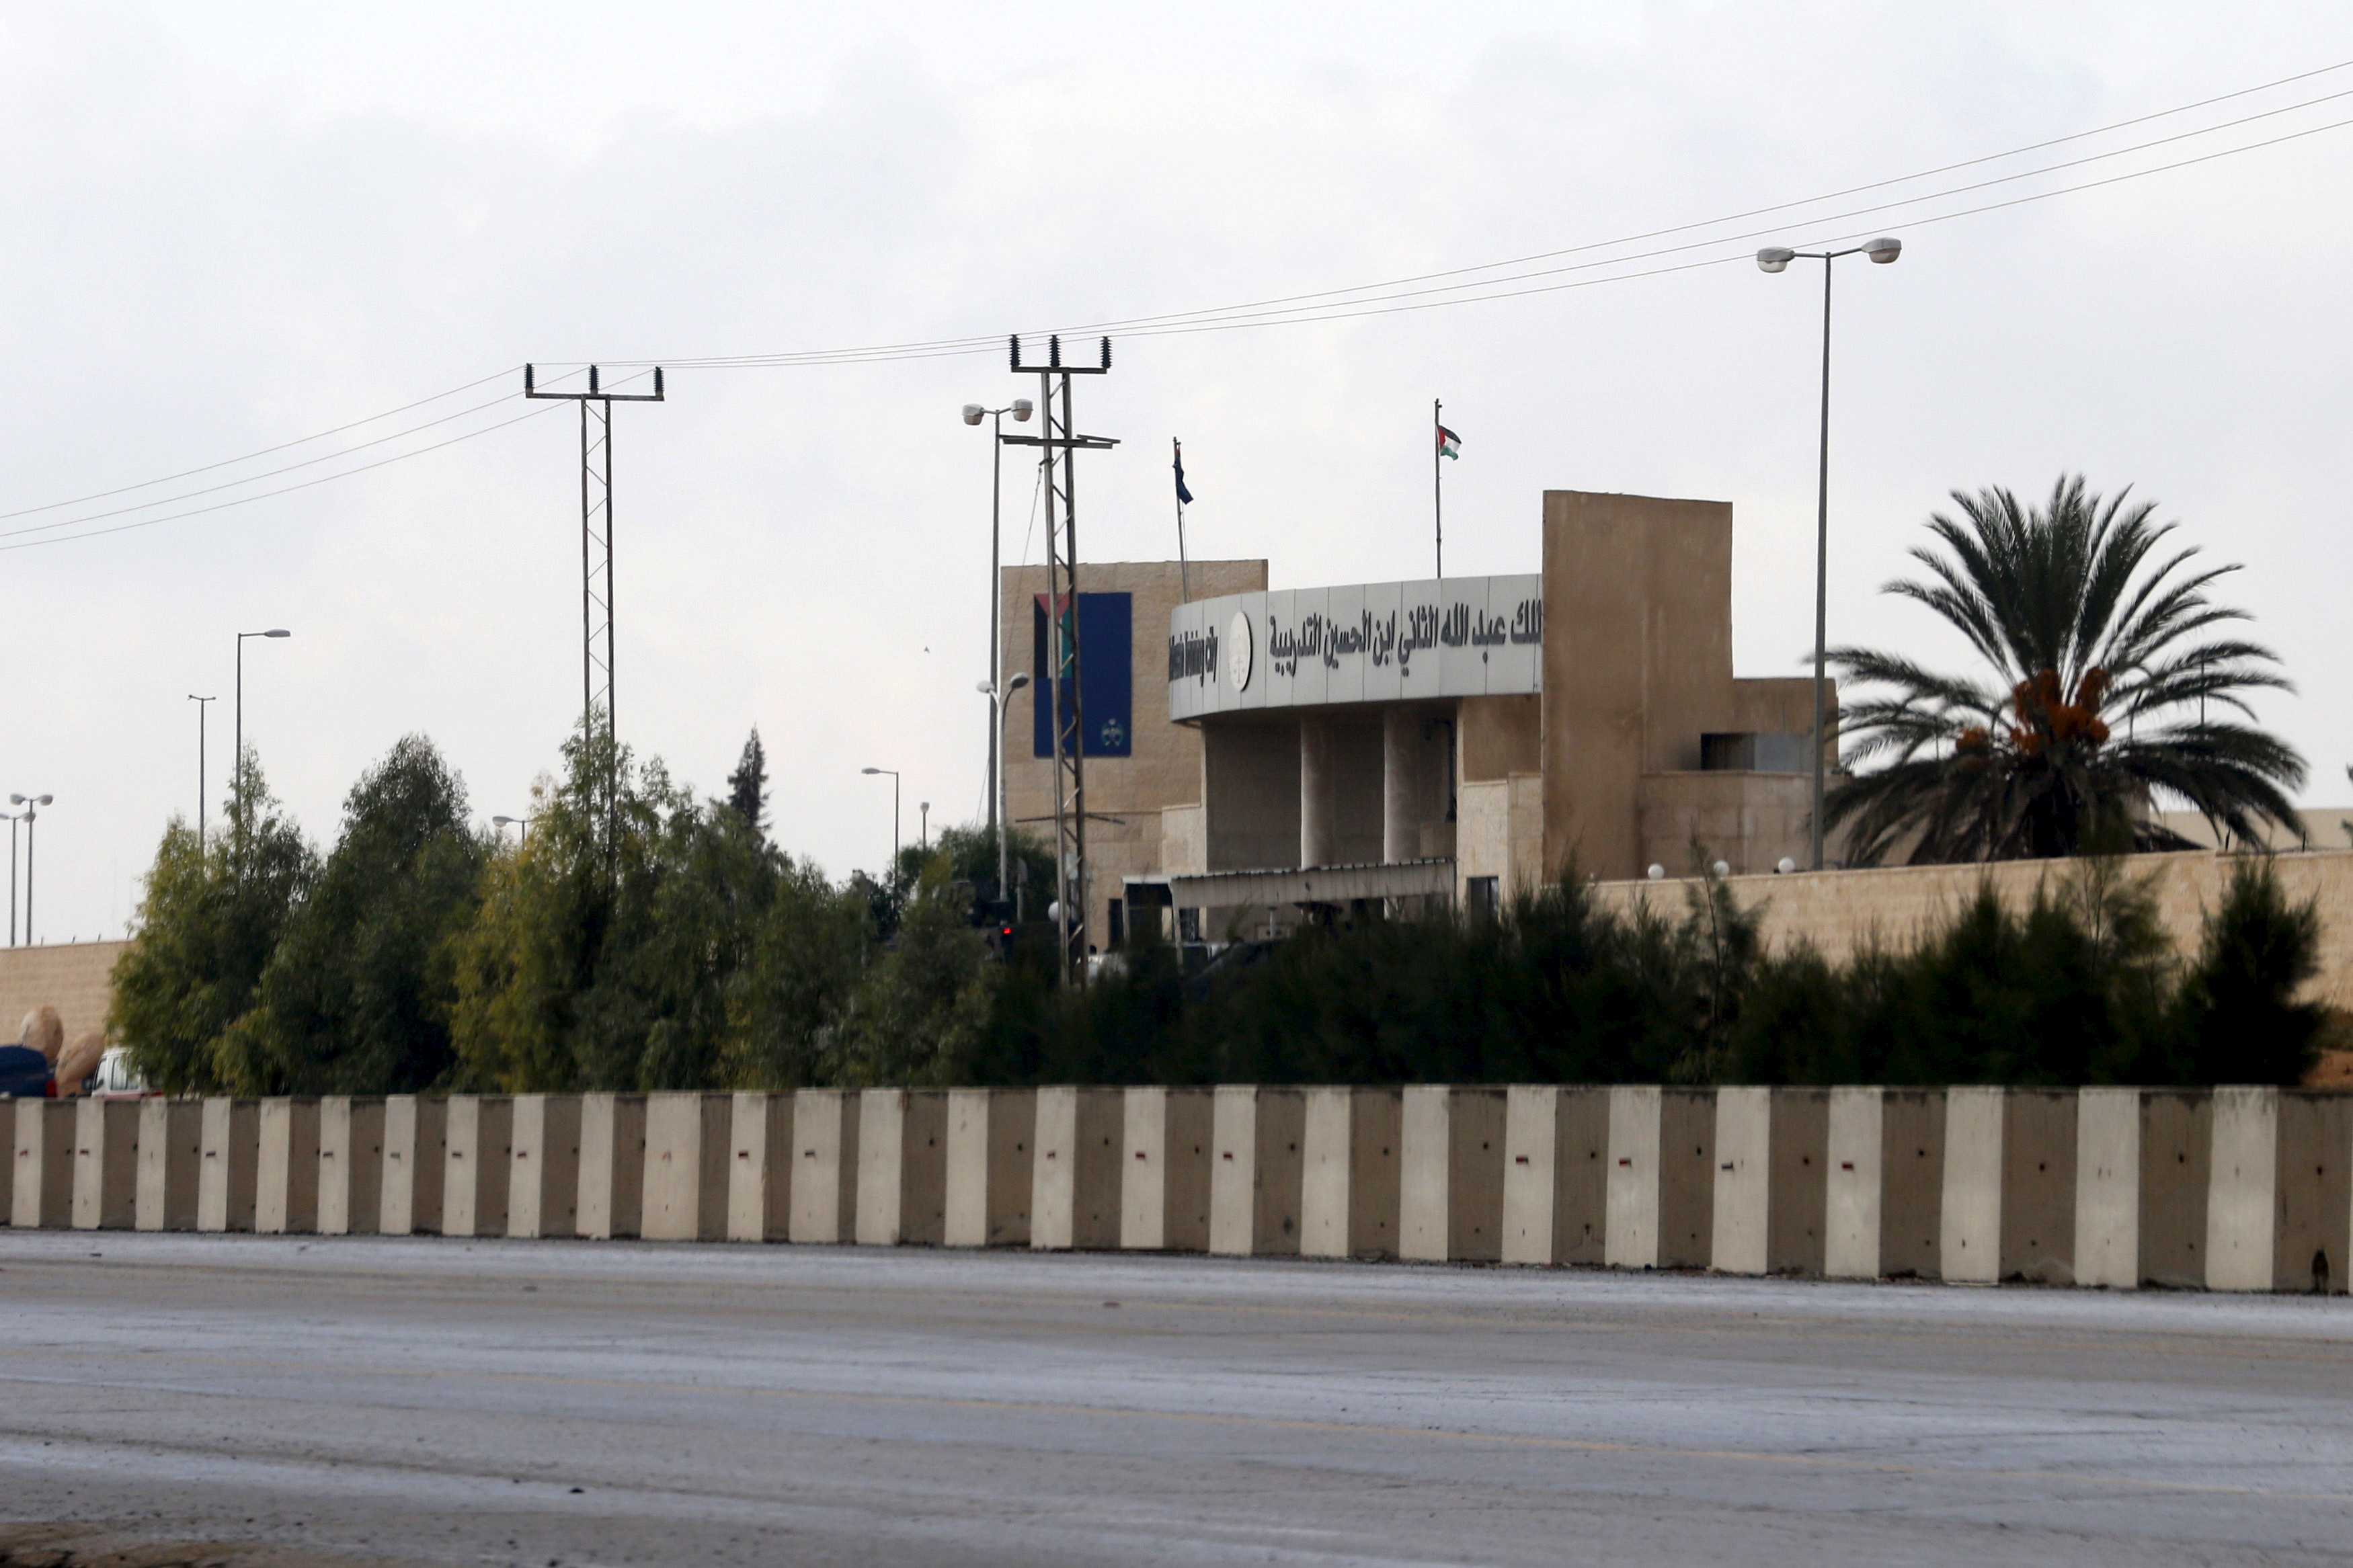 The United States funds security training at King Abdullah bin Al Hussein Training Center near Amman, Jordan. A Jordanian officer opened fire, killing two American military personnel and a South African, Nov. 9, 2015.